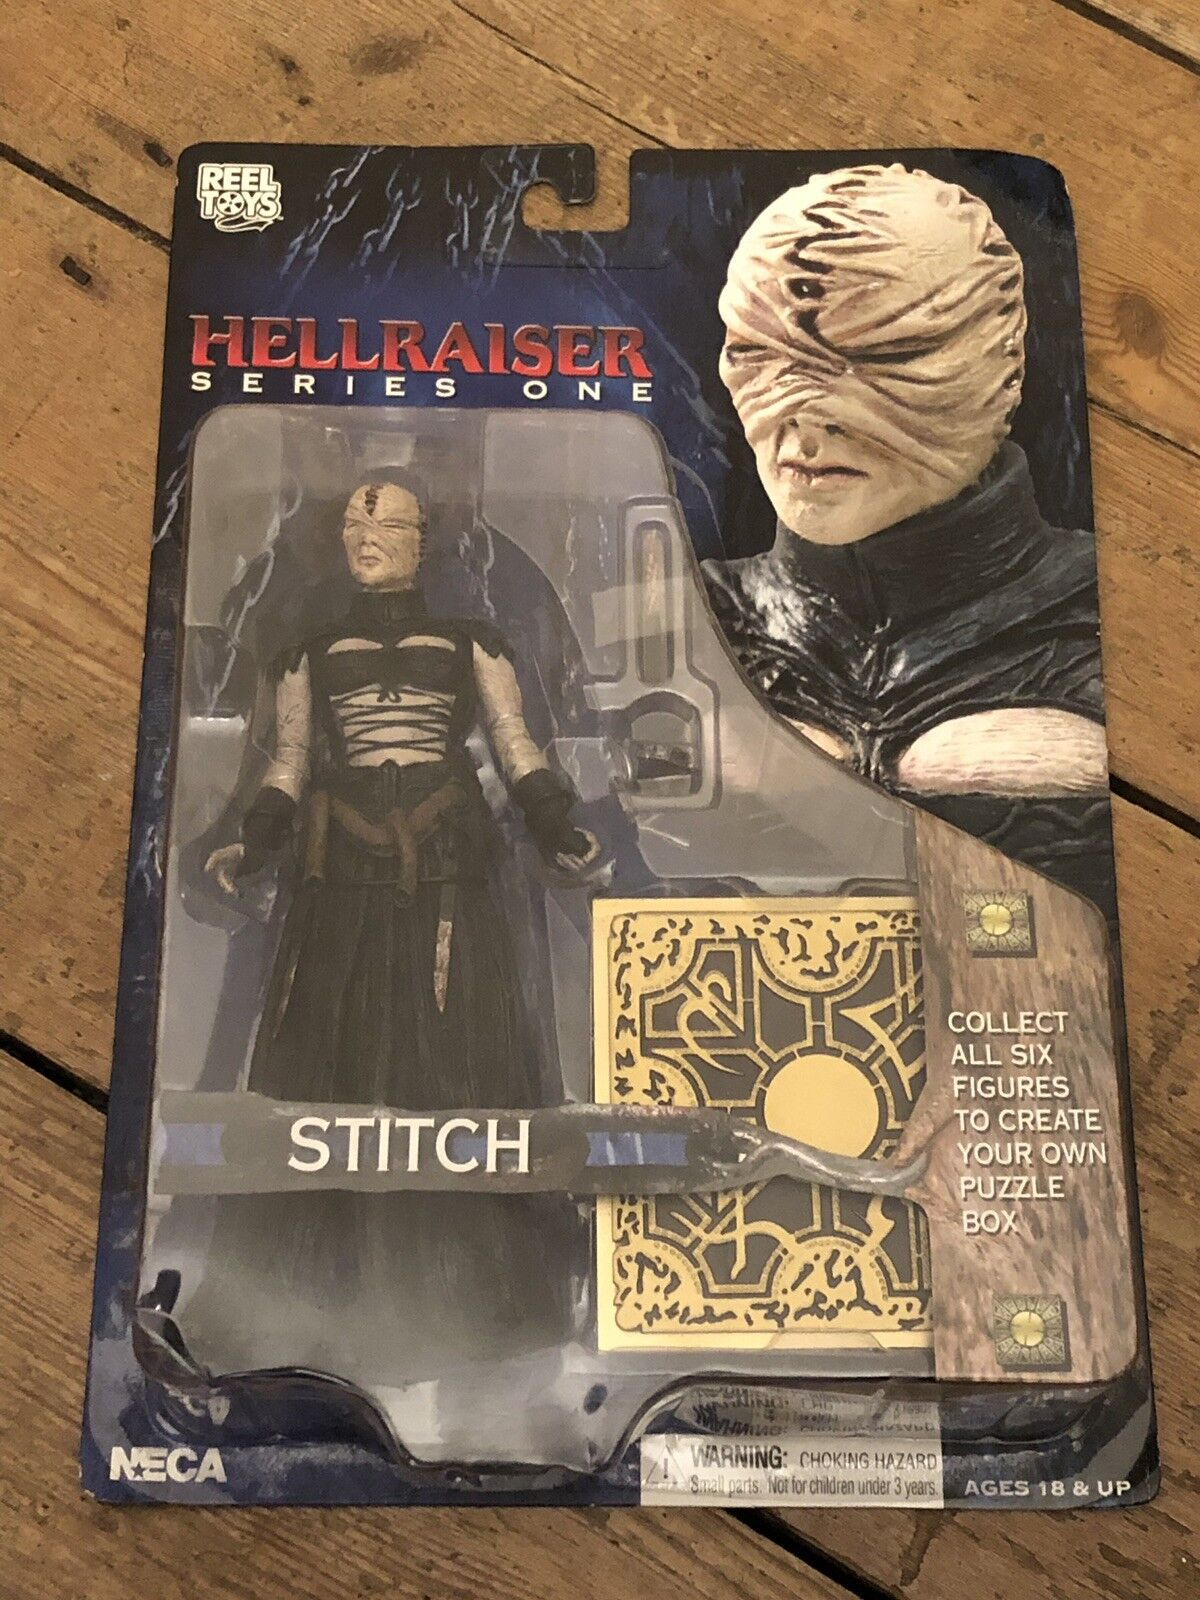 NECA HELLRAISER SERIES 1 Stitch afhrs 1 40